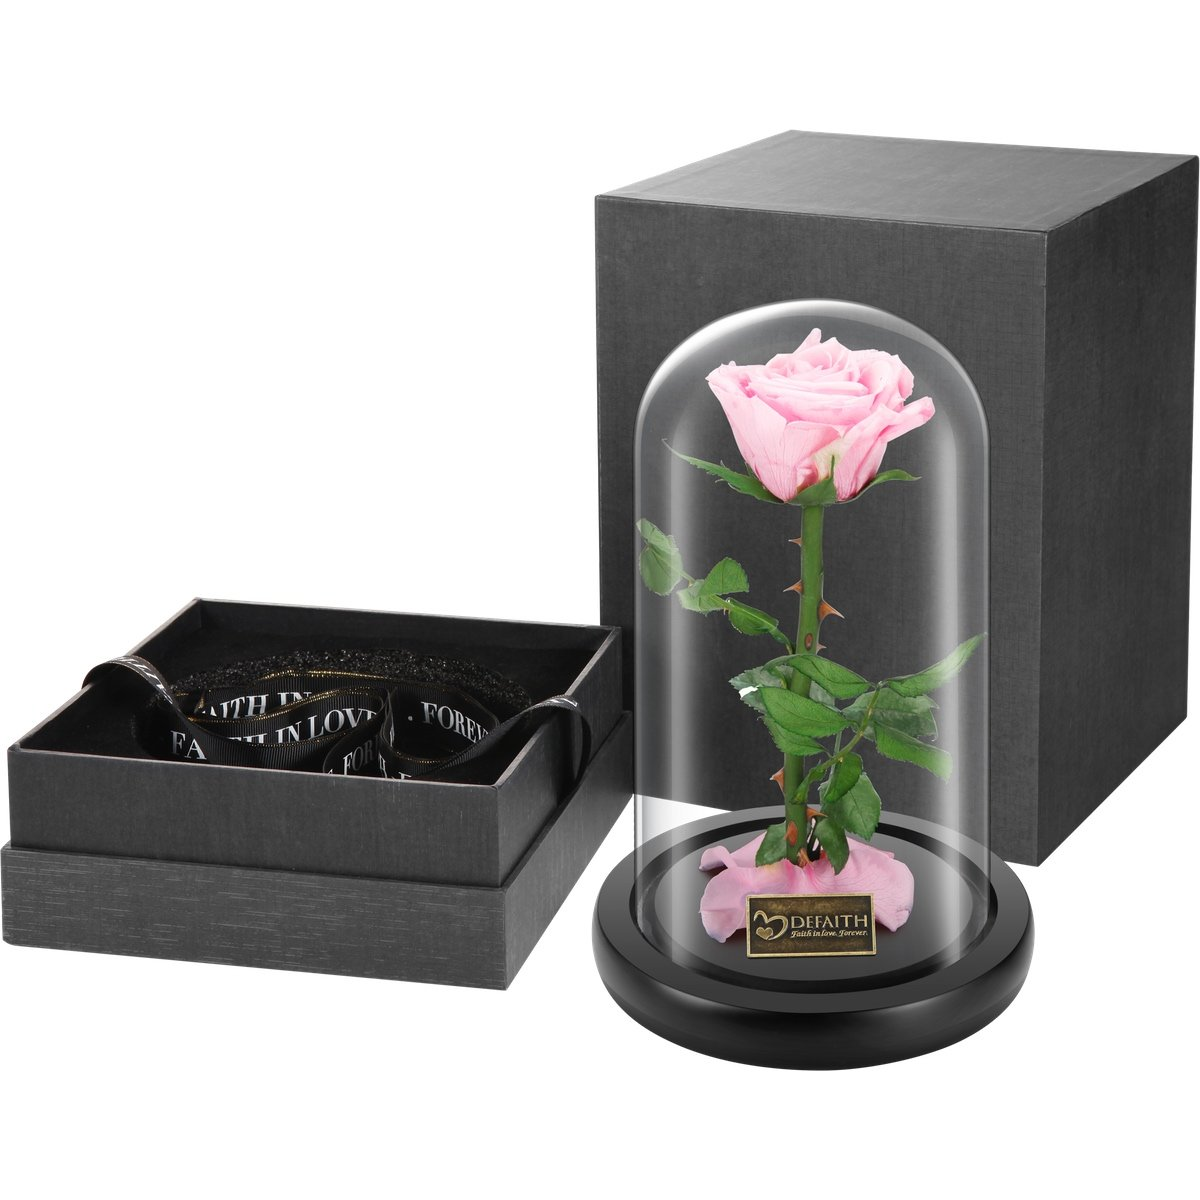 DeFaith Beauty and the Beast Rose, 9'' x 6'' Preserved Real Fresh Rose in Glass, Unique Anniversary Birthday Gifts for Her Women Mother Wife Girlfriend (9'' Beauty and The Beast Rose - Light Pink)